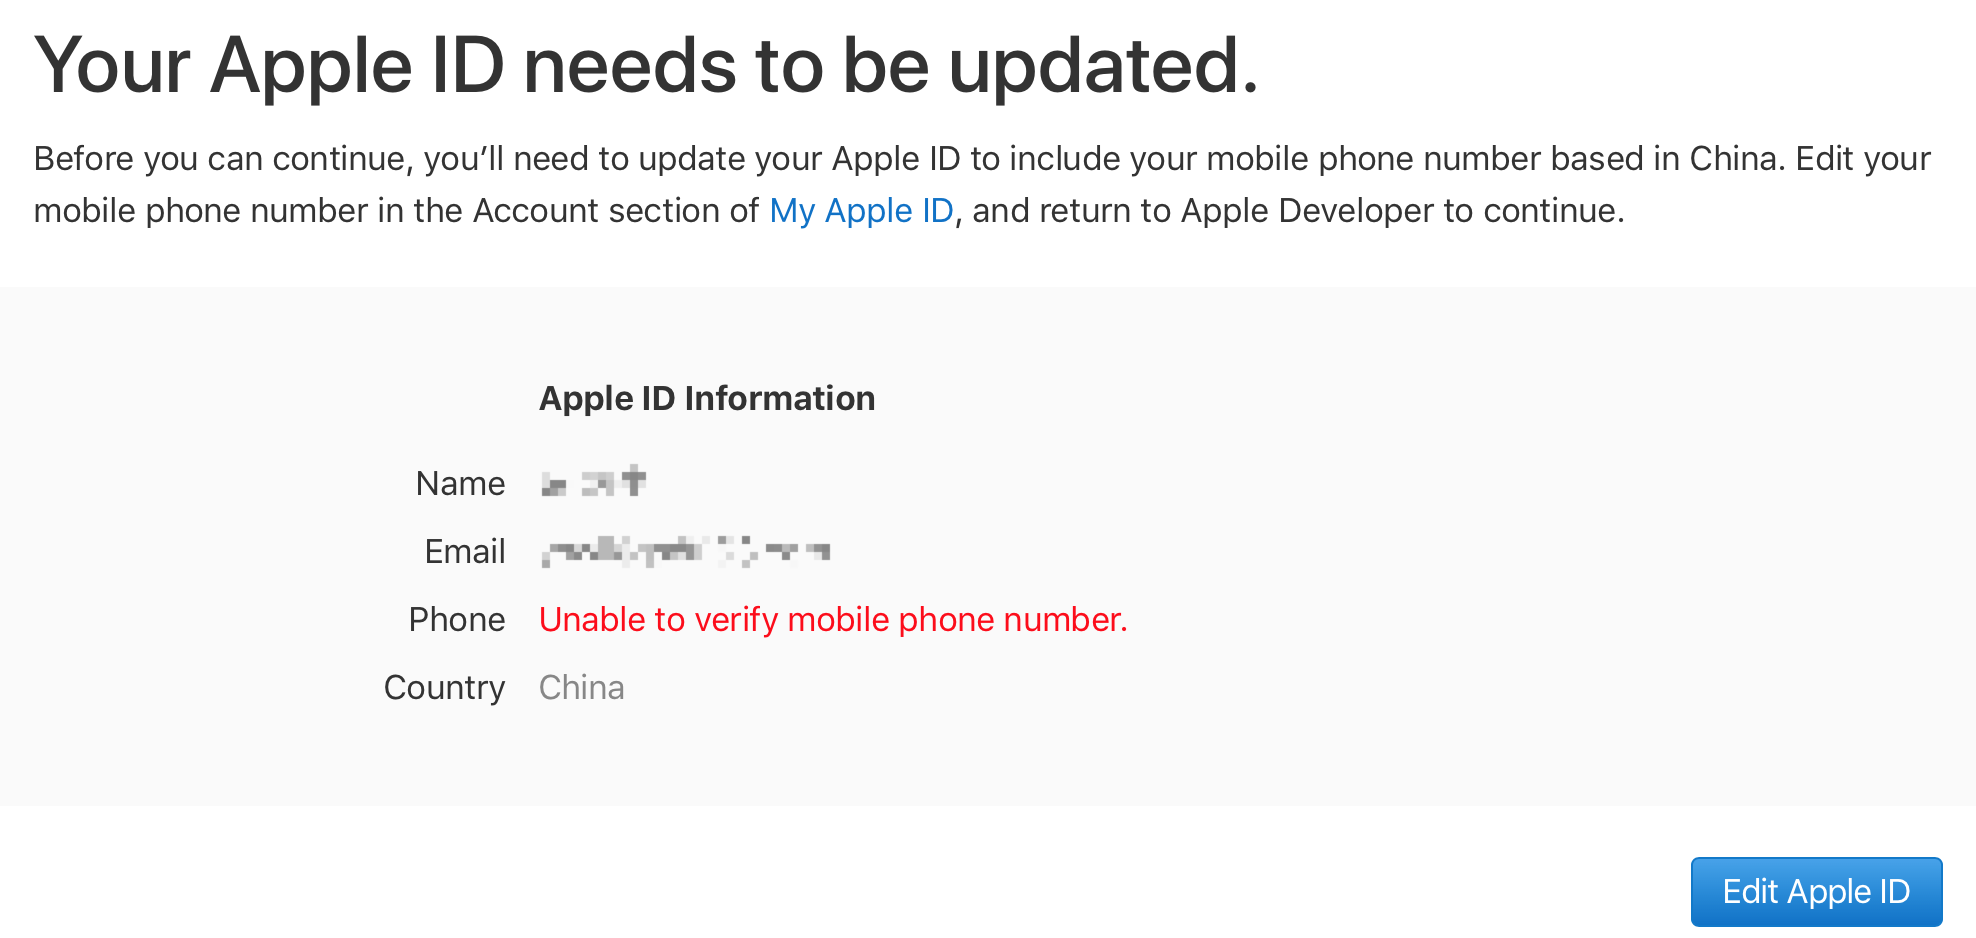 Unable to verify mobile phone number.